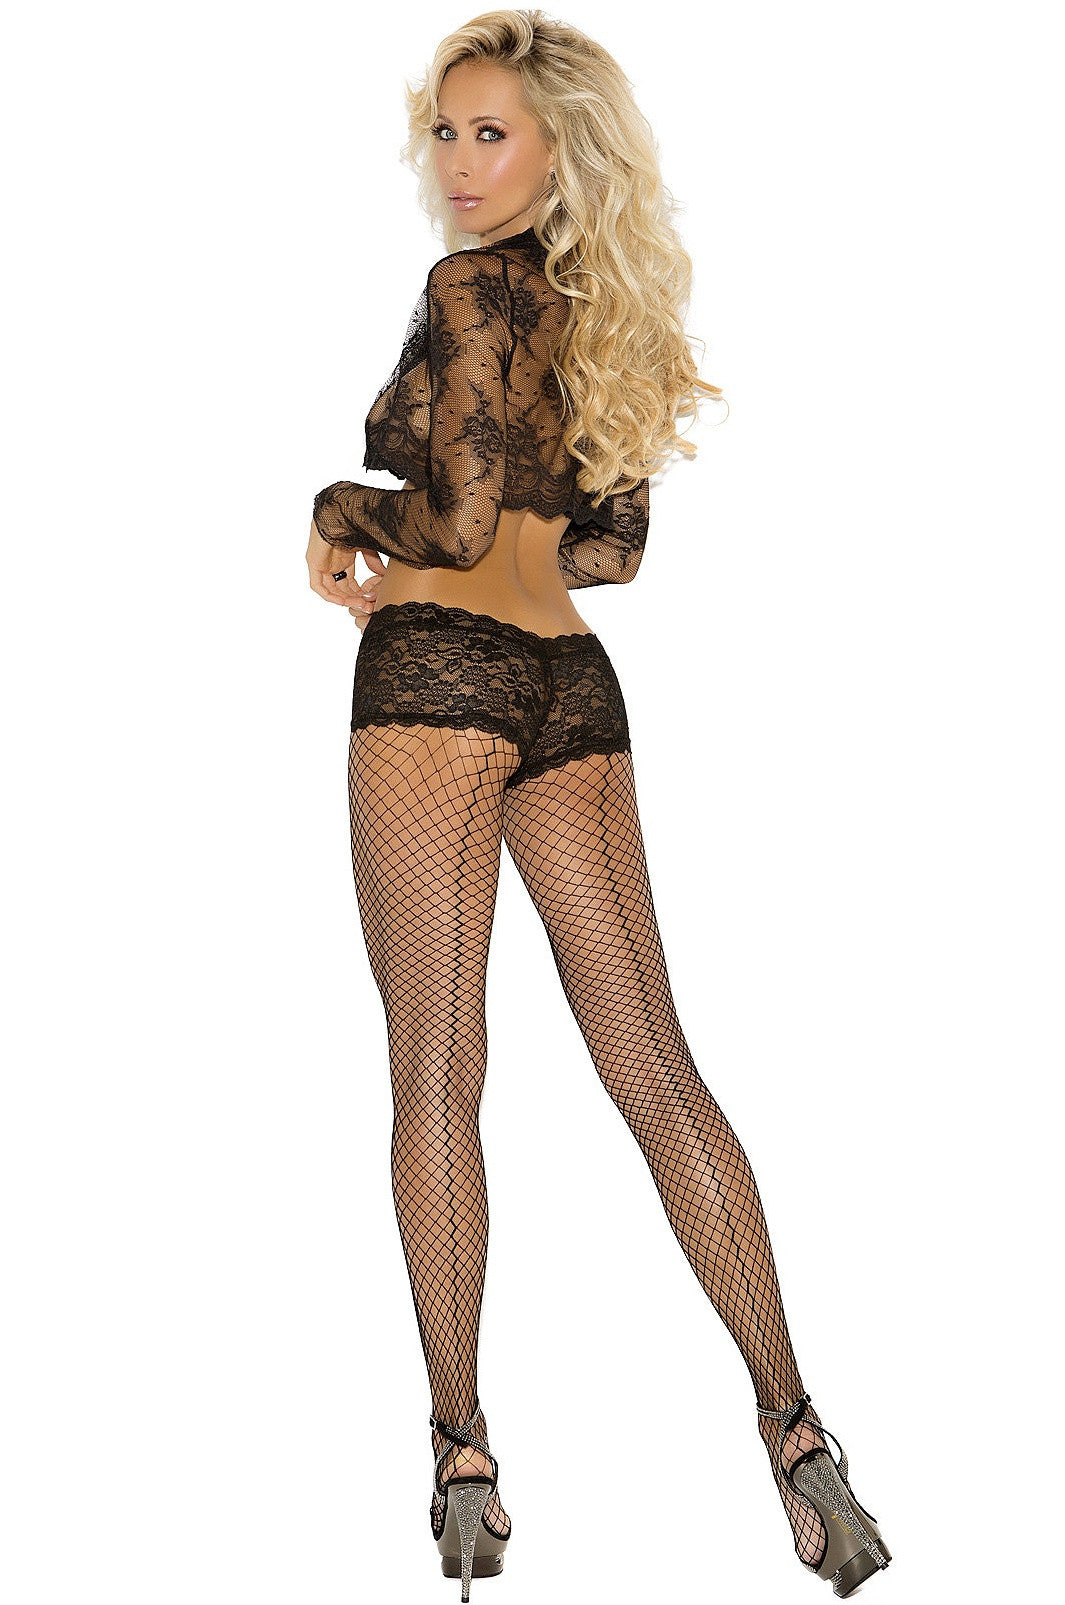 EM-1896 Black fence net pantyhose with attached panty - Sexylingerieland